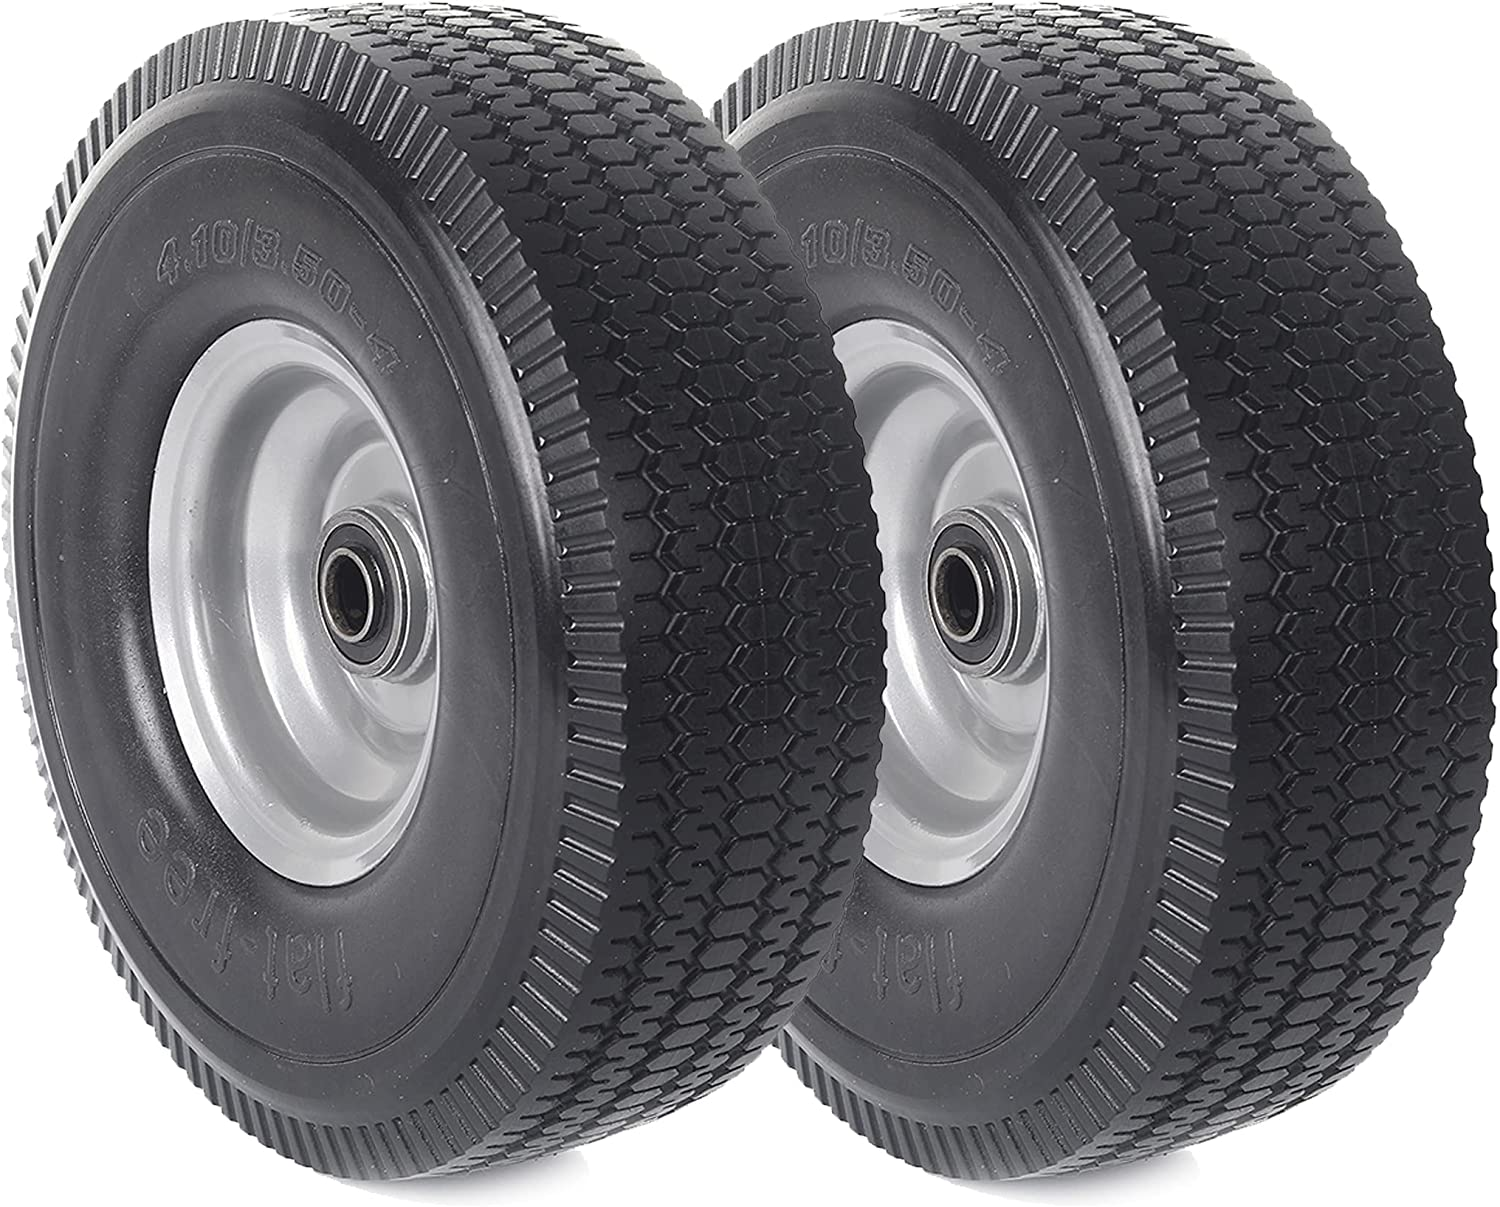 """(2-Pack) AR-PRO 4.10/3.50-4"""" Solid Rubber Tire and Wheel Assemblies - 10"""" Flat Free Tubeless Tires and Wheels for Utility Equipment - 5/8"""" Axle Bore Hole, Centered Hub, and Double-Sealed Ball Bearings"""